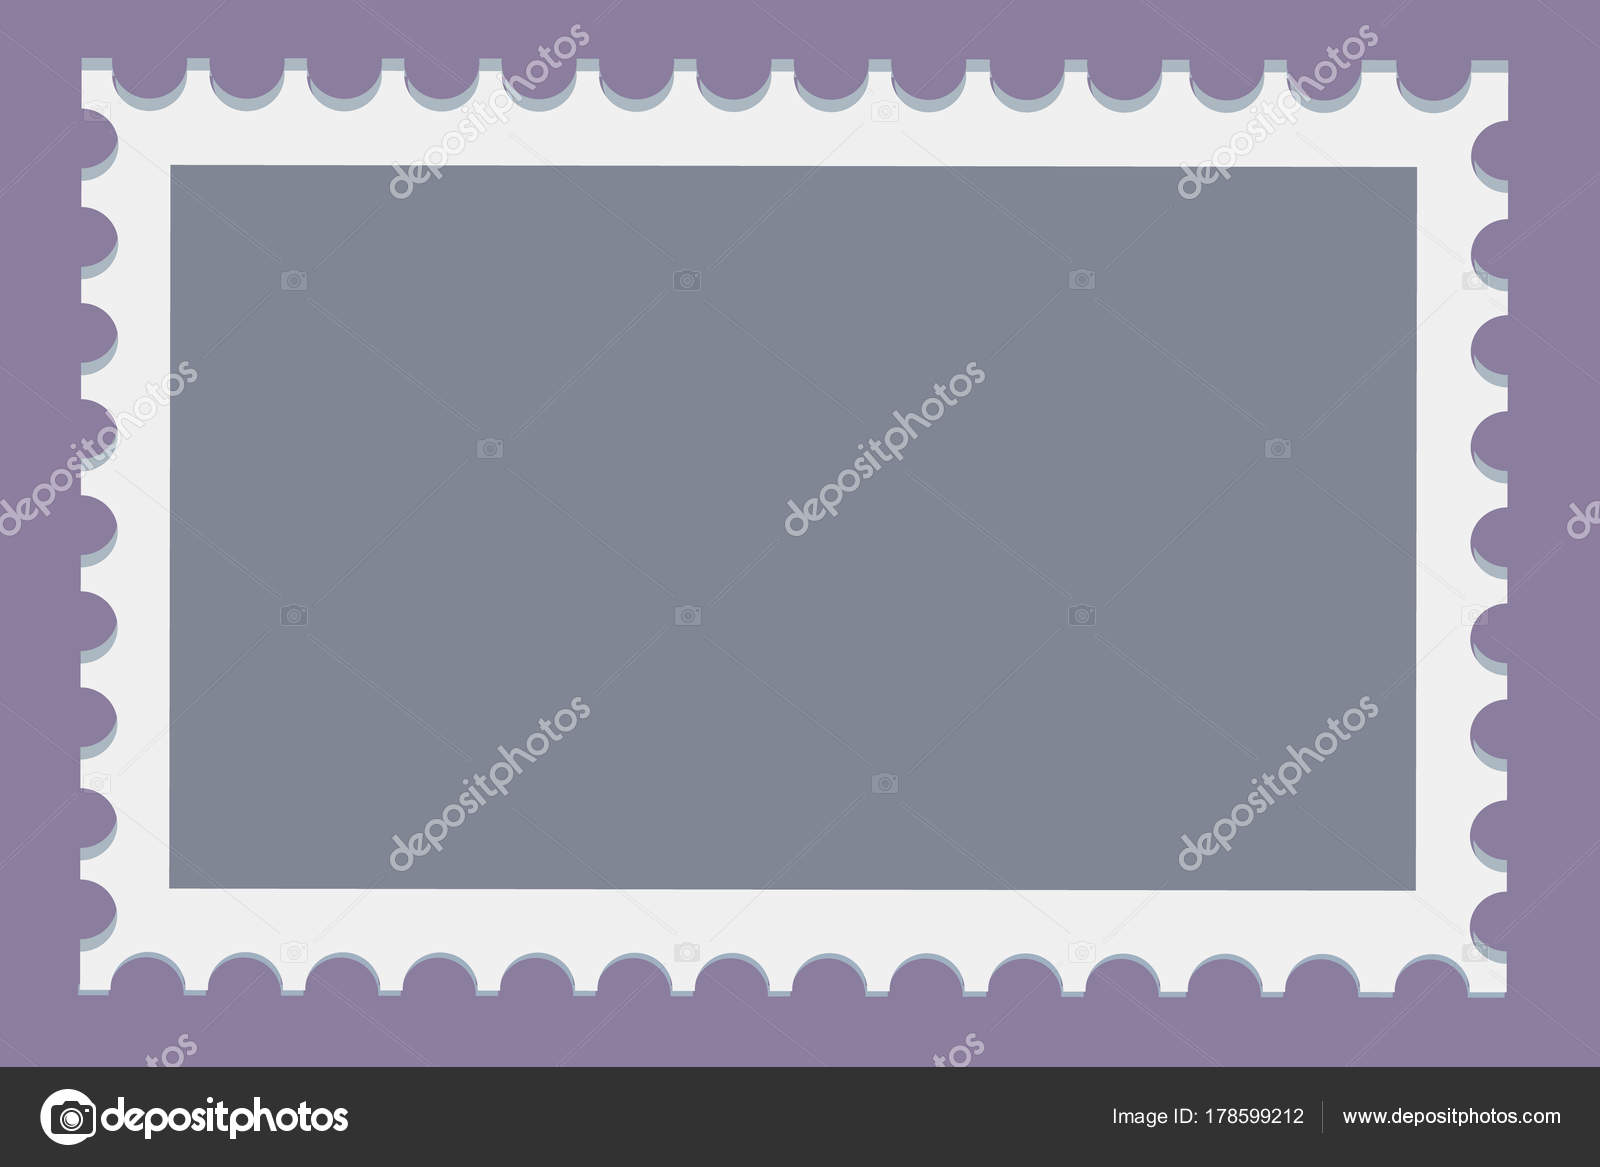 blank postage stamps template set on dark background rectangle